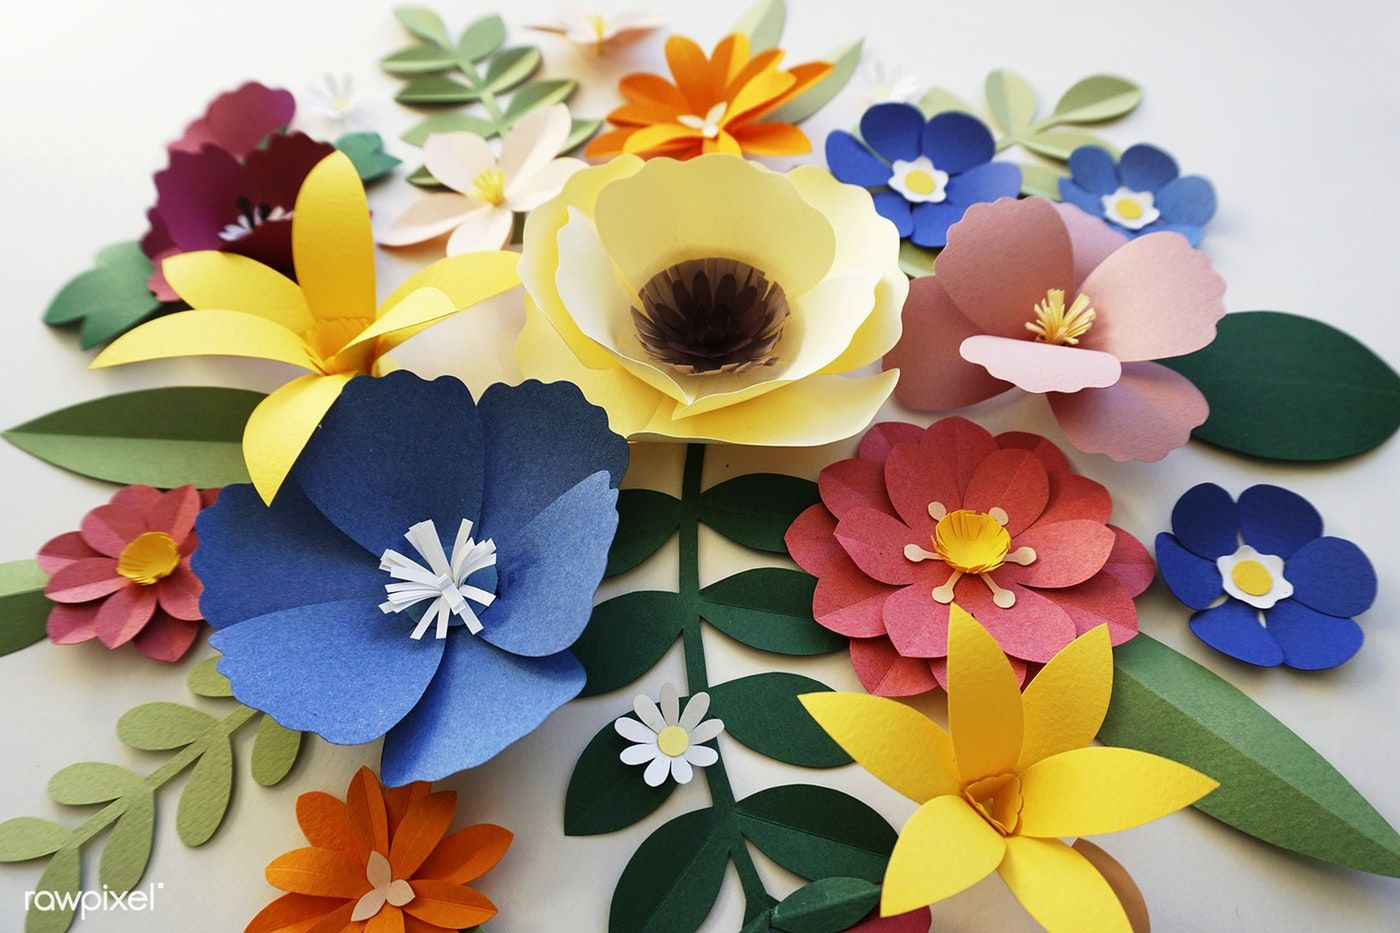 Set Of Flowers And Plants Made Out Of Paper Premium Image By